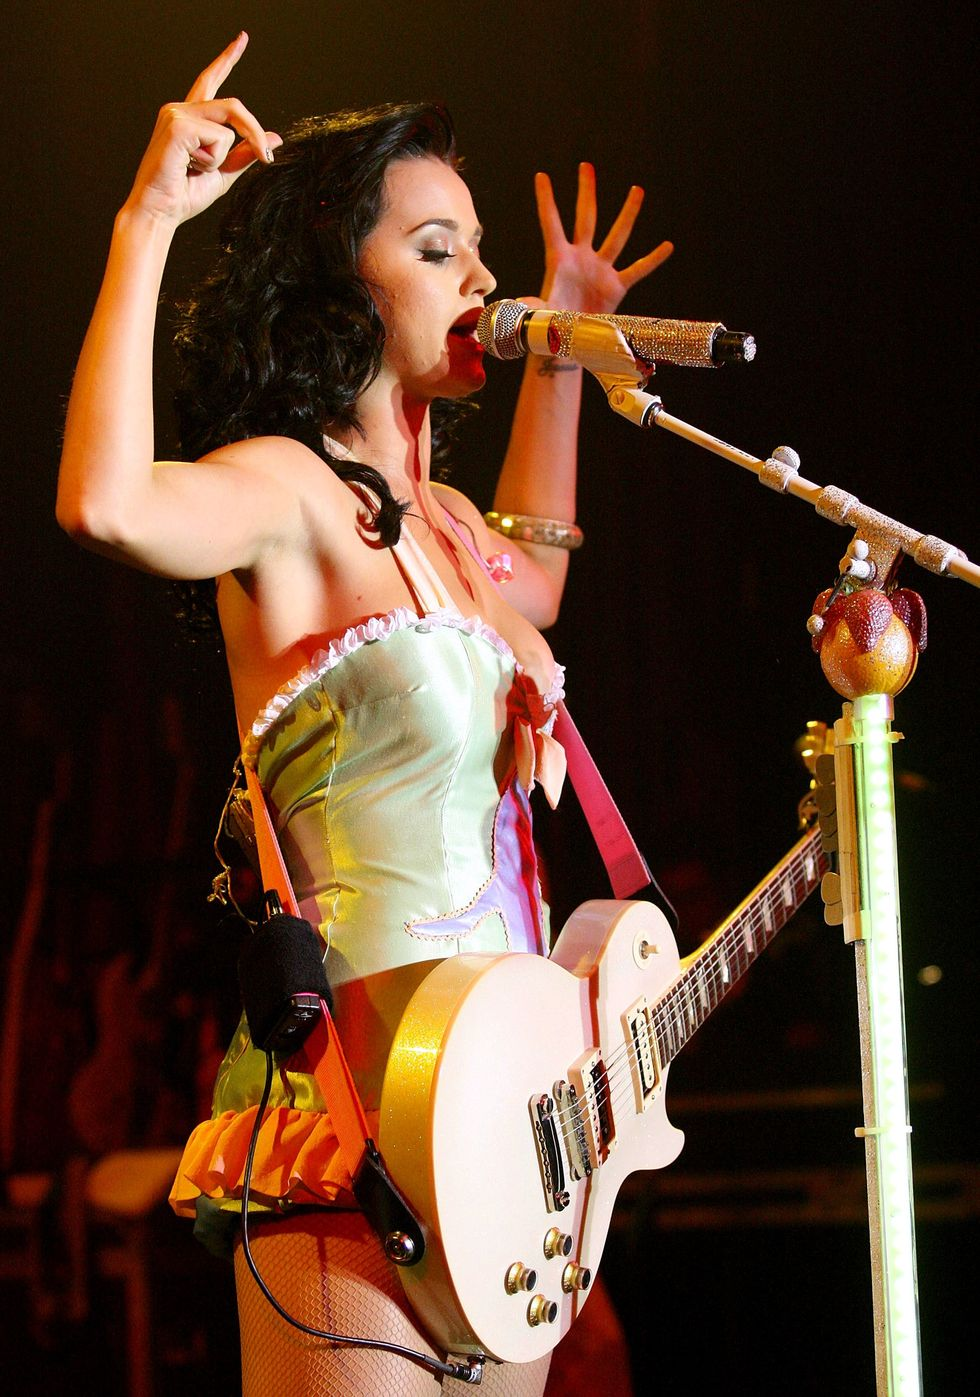 katy-perry-performs-at-the-tivoli-in-brisbane-02